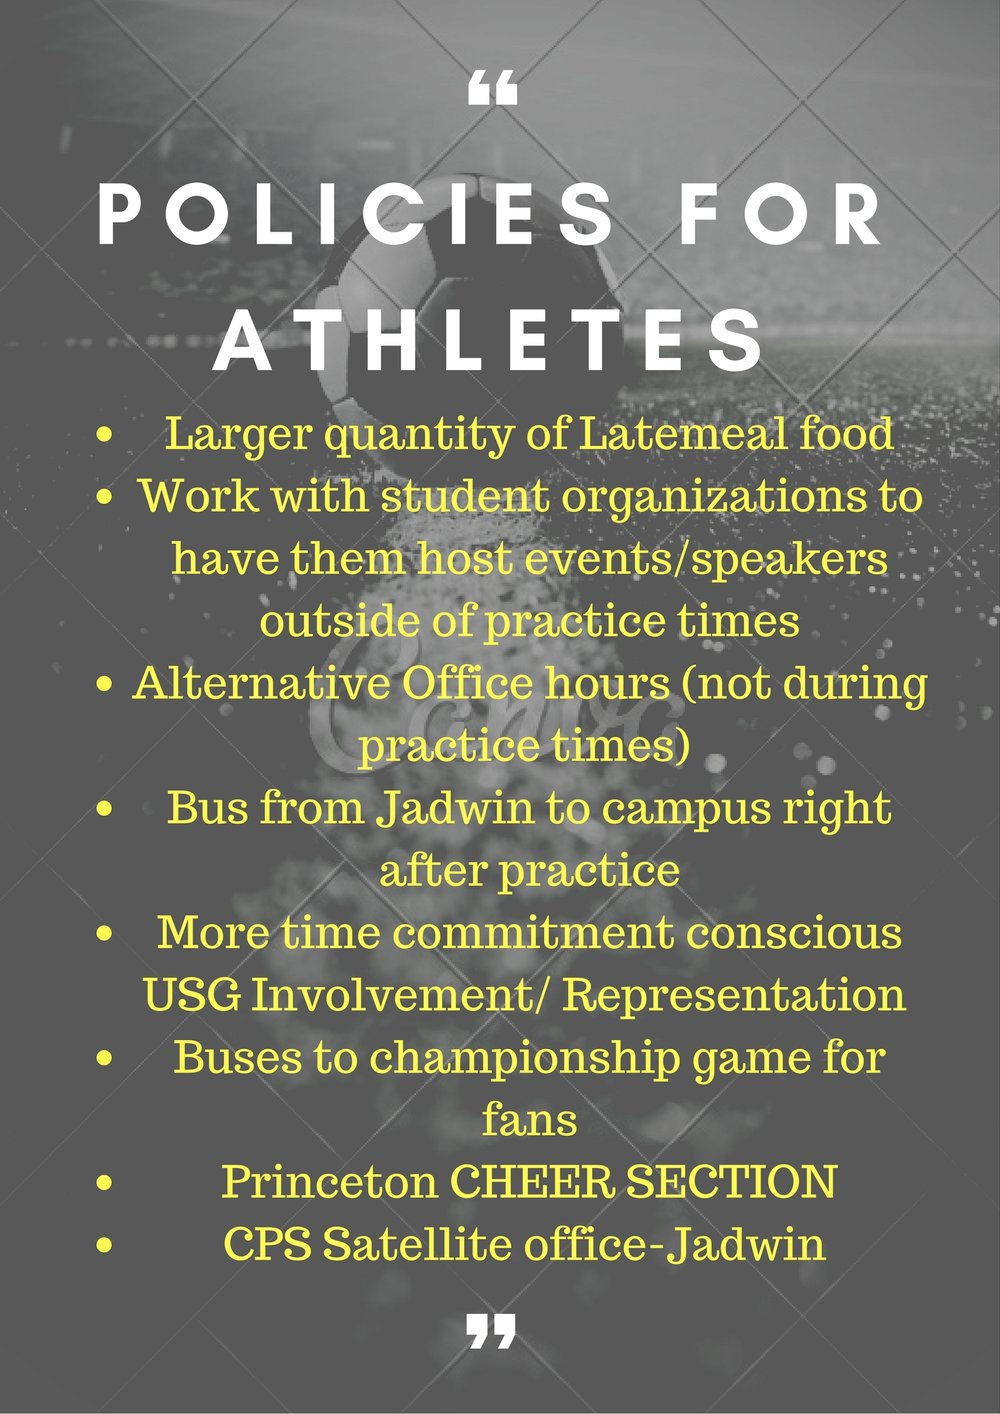 Policies for Athletes Tall.jpg